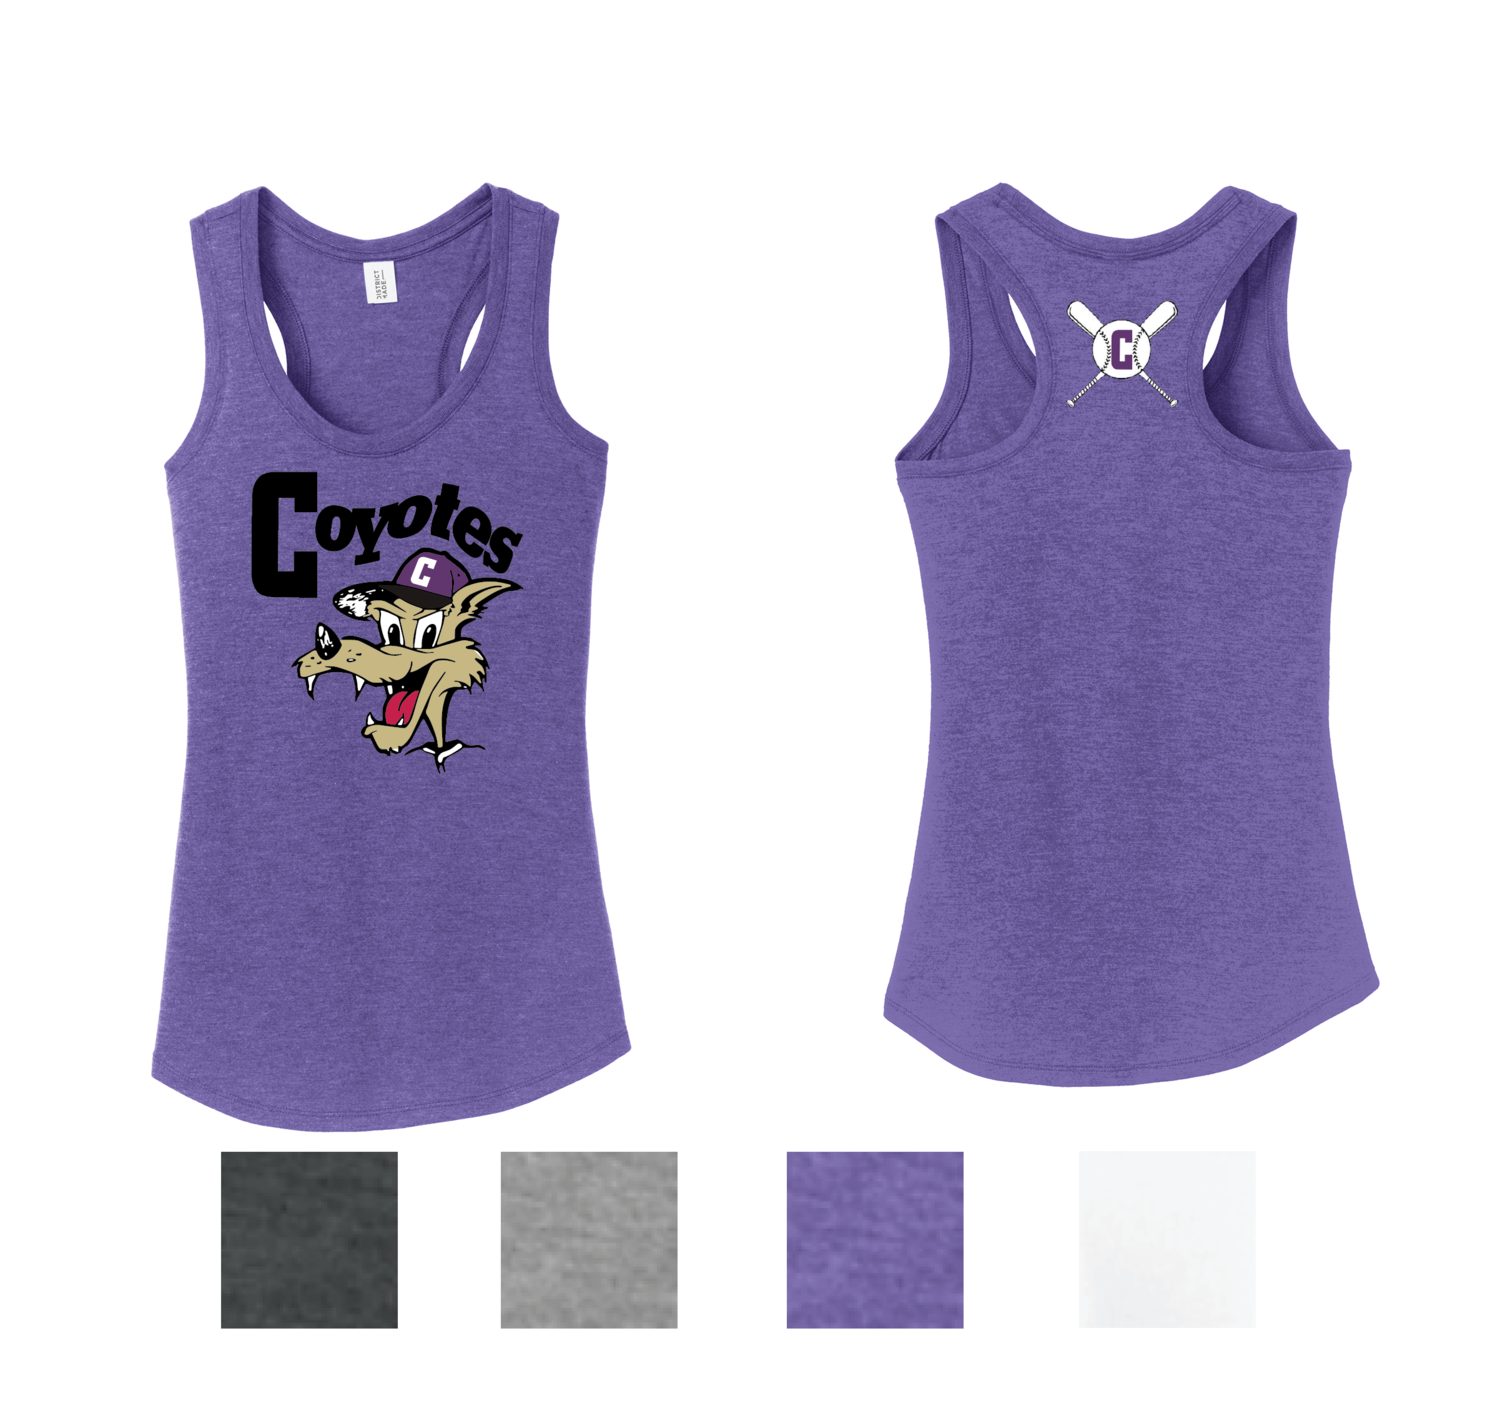 District ® Women's Perfect Tri ® Racerback Tank